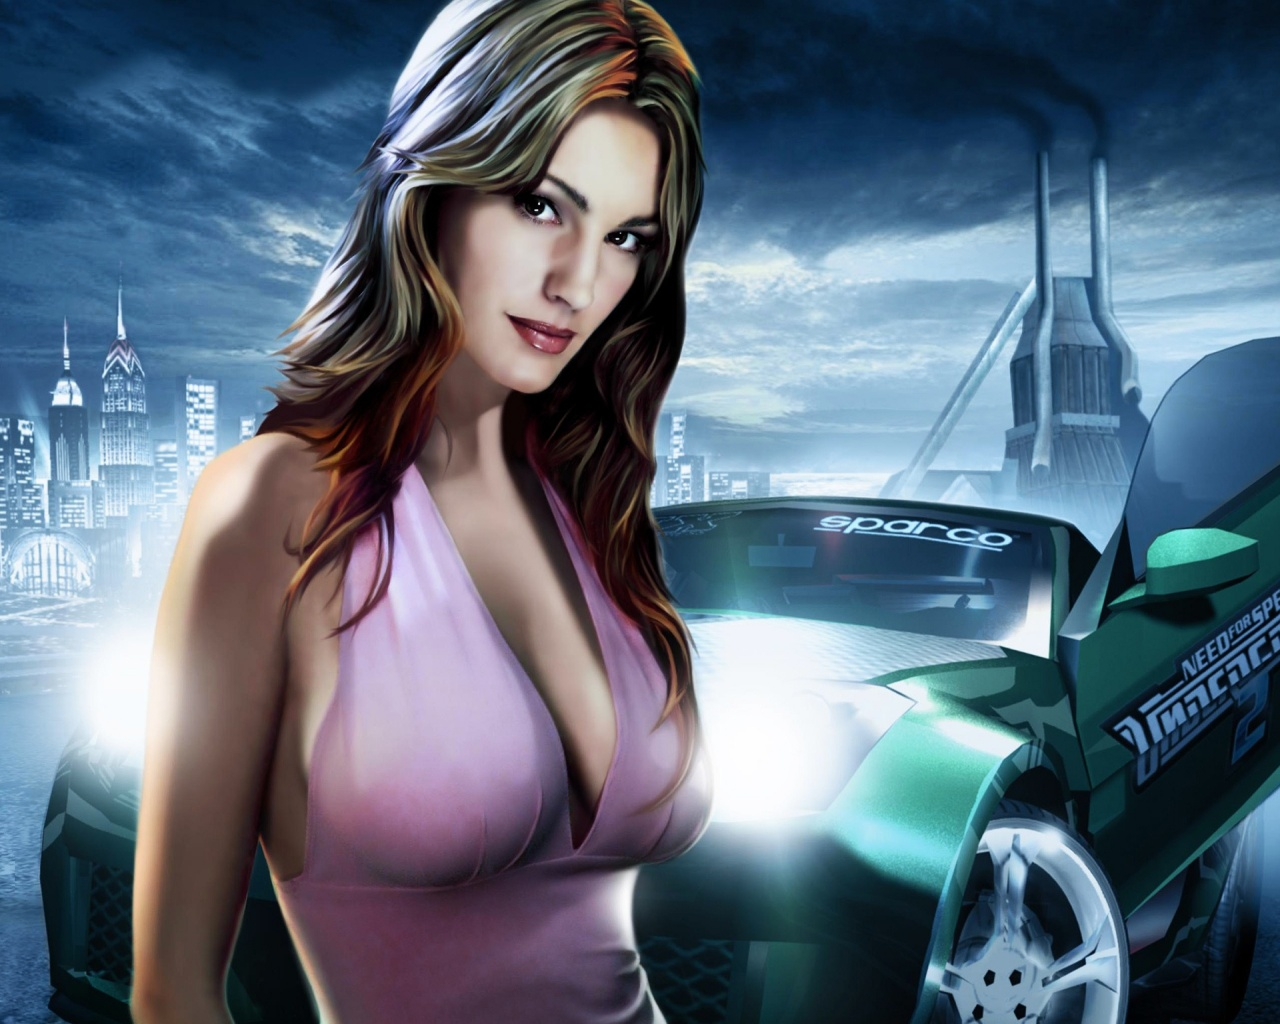 mclaren f1 nfs hot pursuit with Need For Speed Girl Wallpaper 5091 on 1 besides Need For Speed Hot Pursuit 2010 moreover Need for speed girl wallpaper 5091 in addition NeedForSpeed furthermore 30.